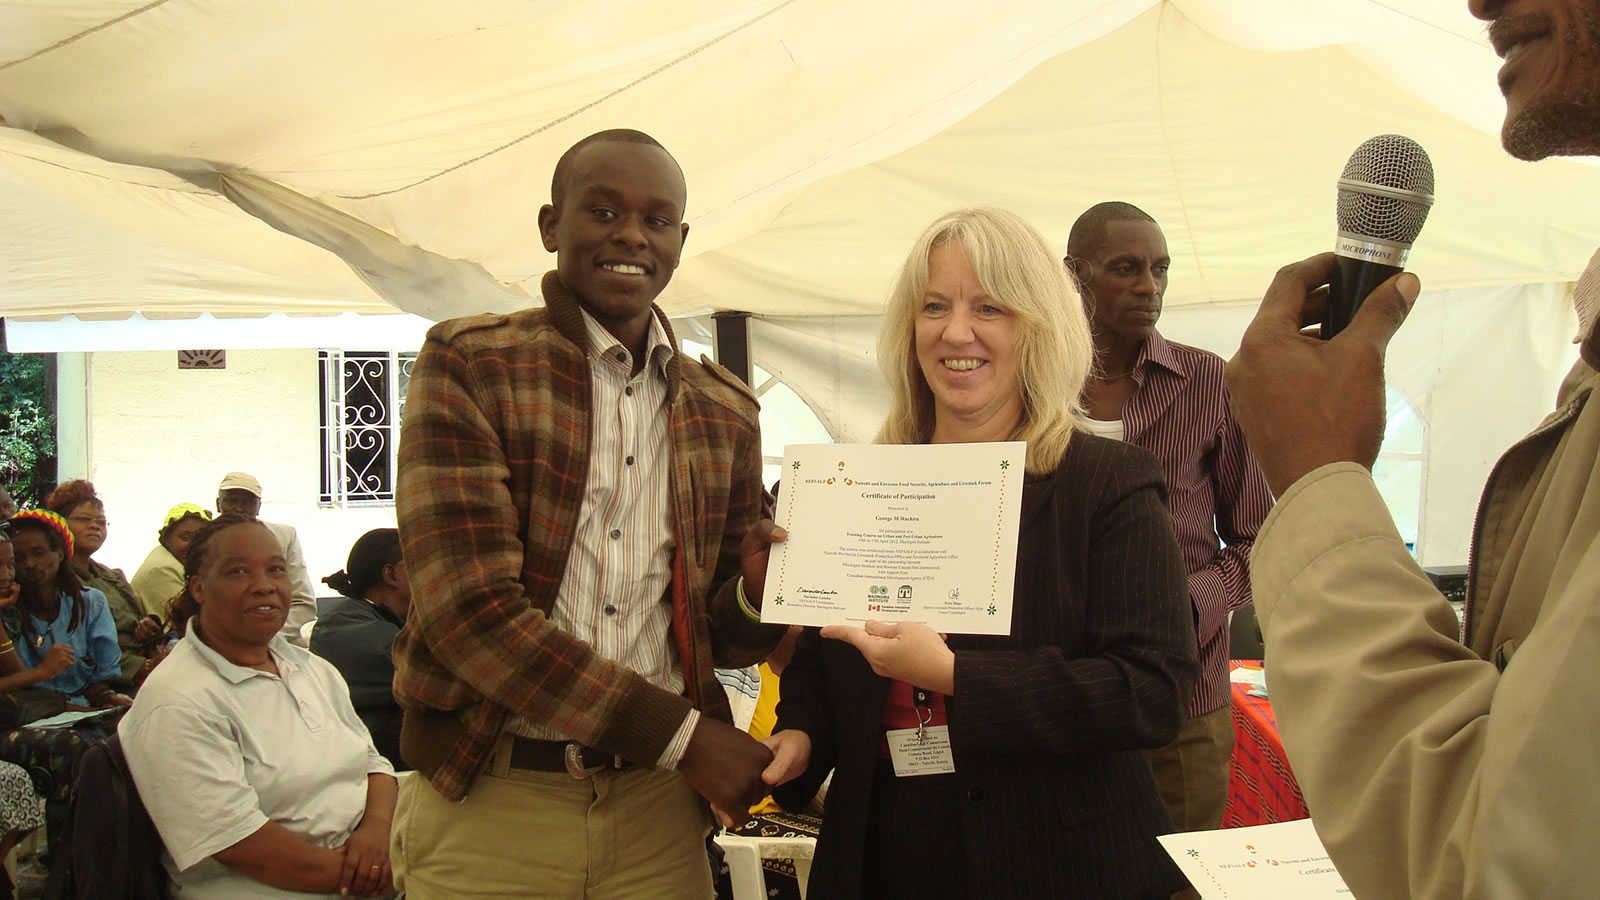 Melanie-Boyd-from-Canadian-High-Commision-presents-a-certificate-to-George-Mugo